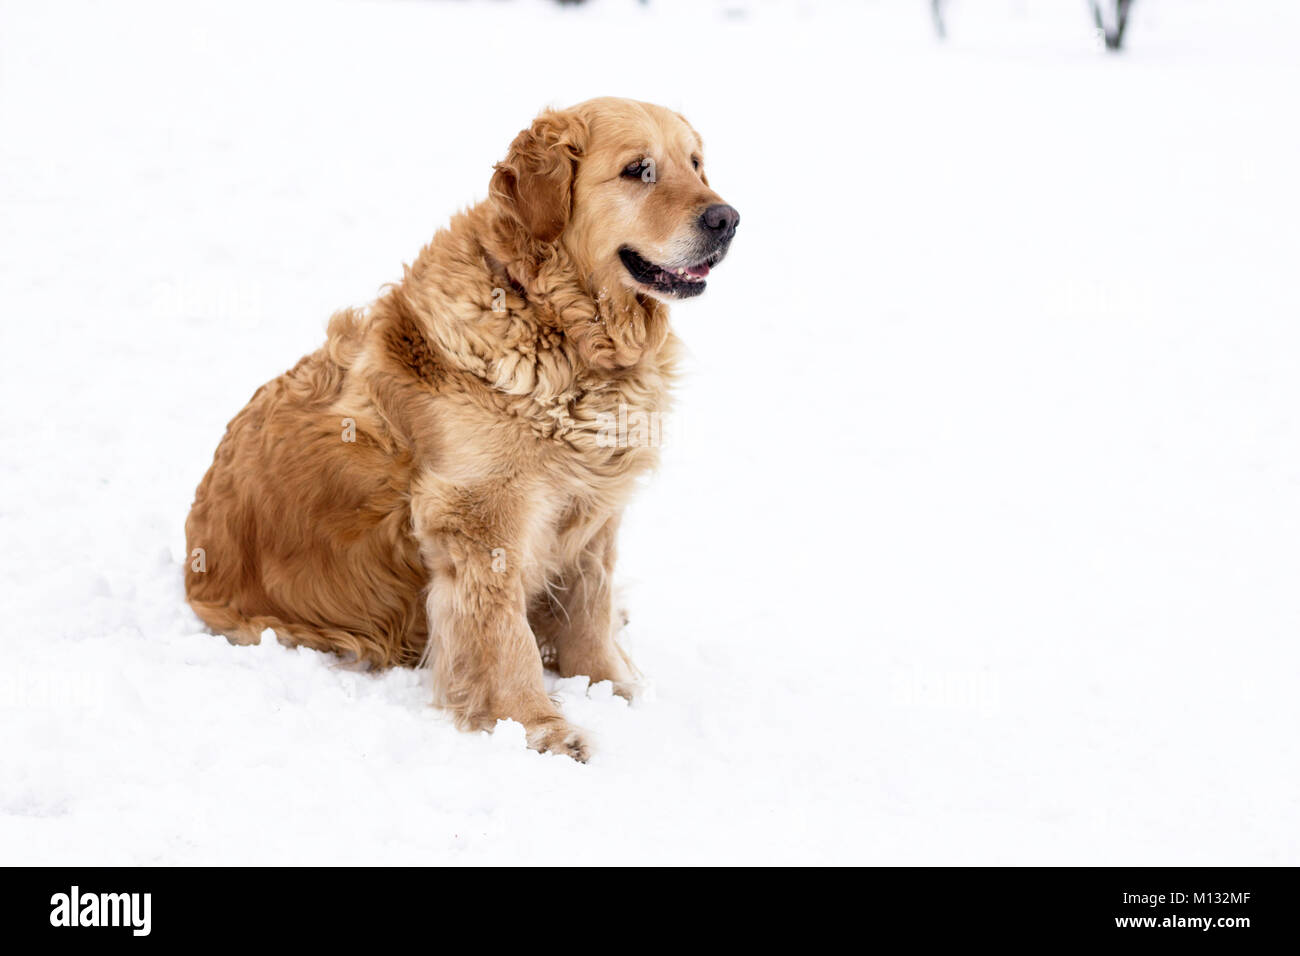 old golden retriever dog winter portrait with snow - Stock Image